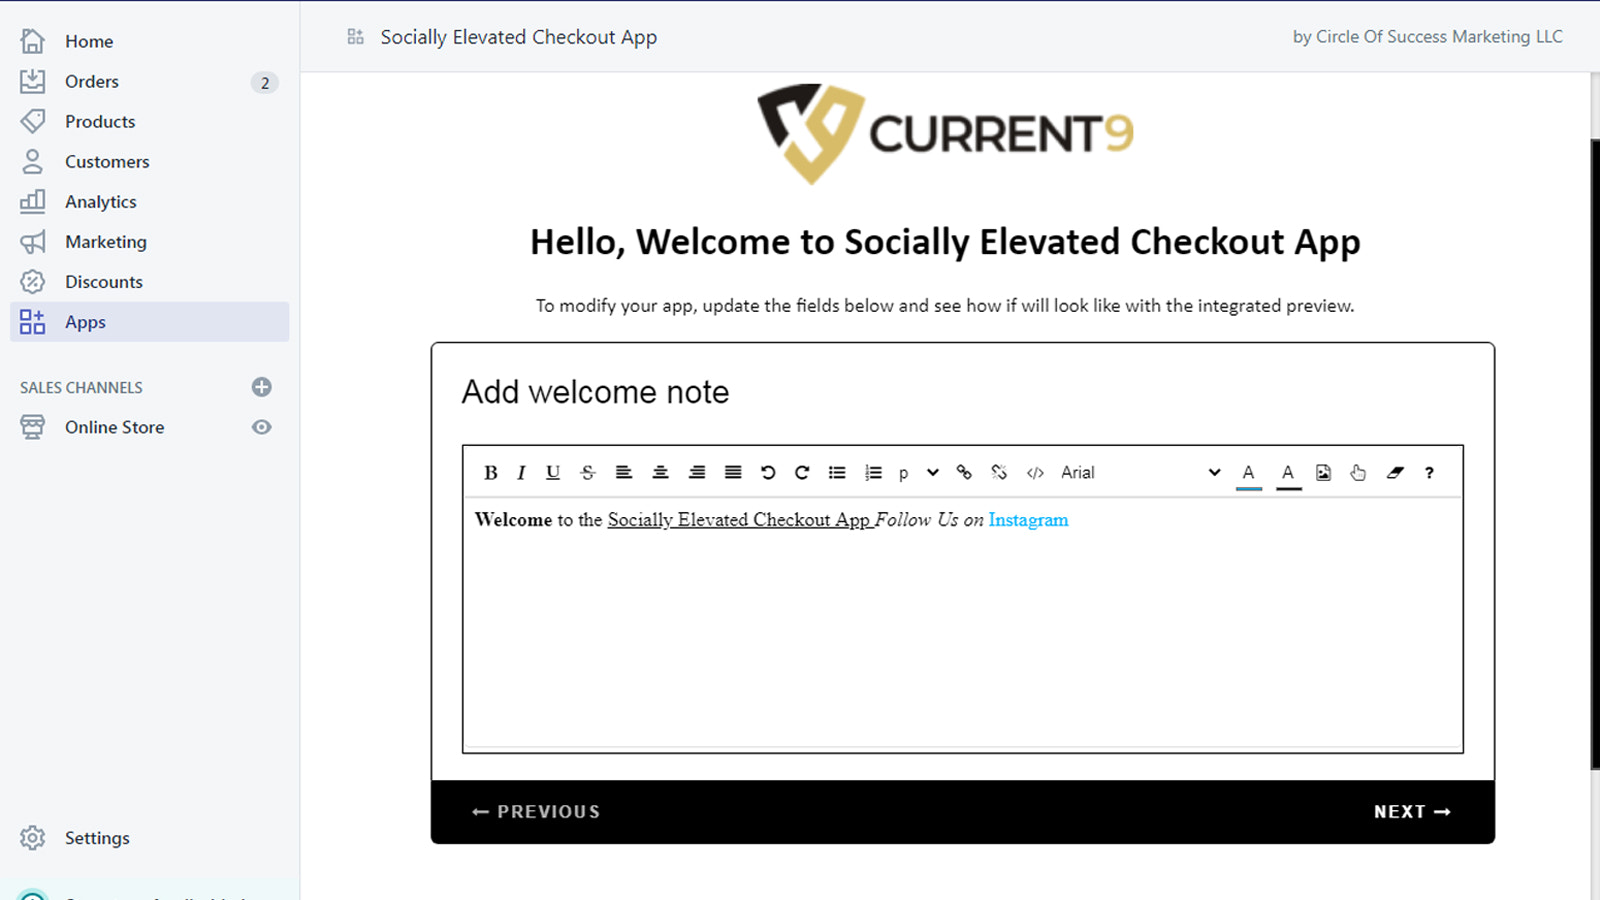 Socially Elevated Checkout App